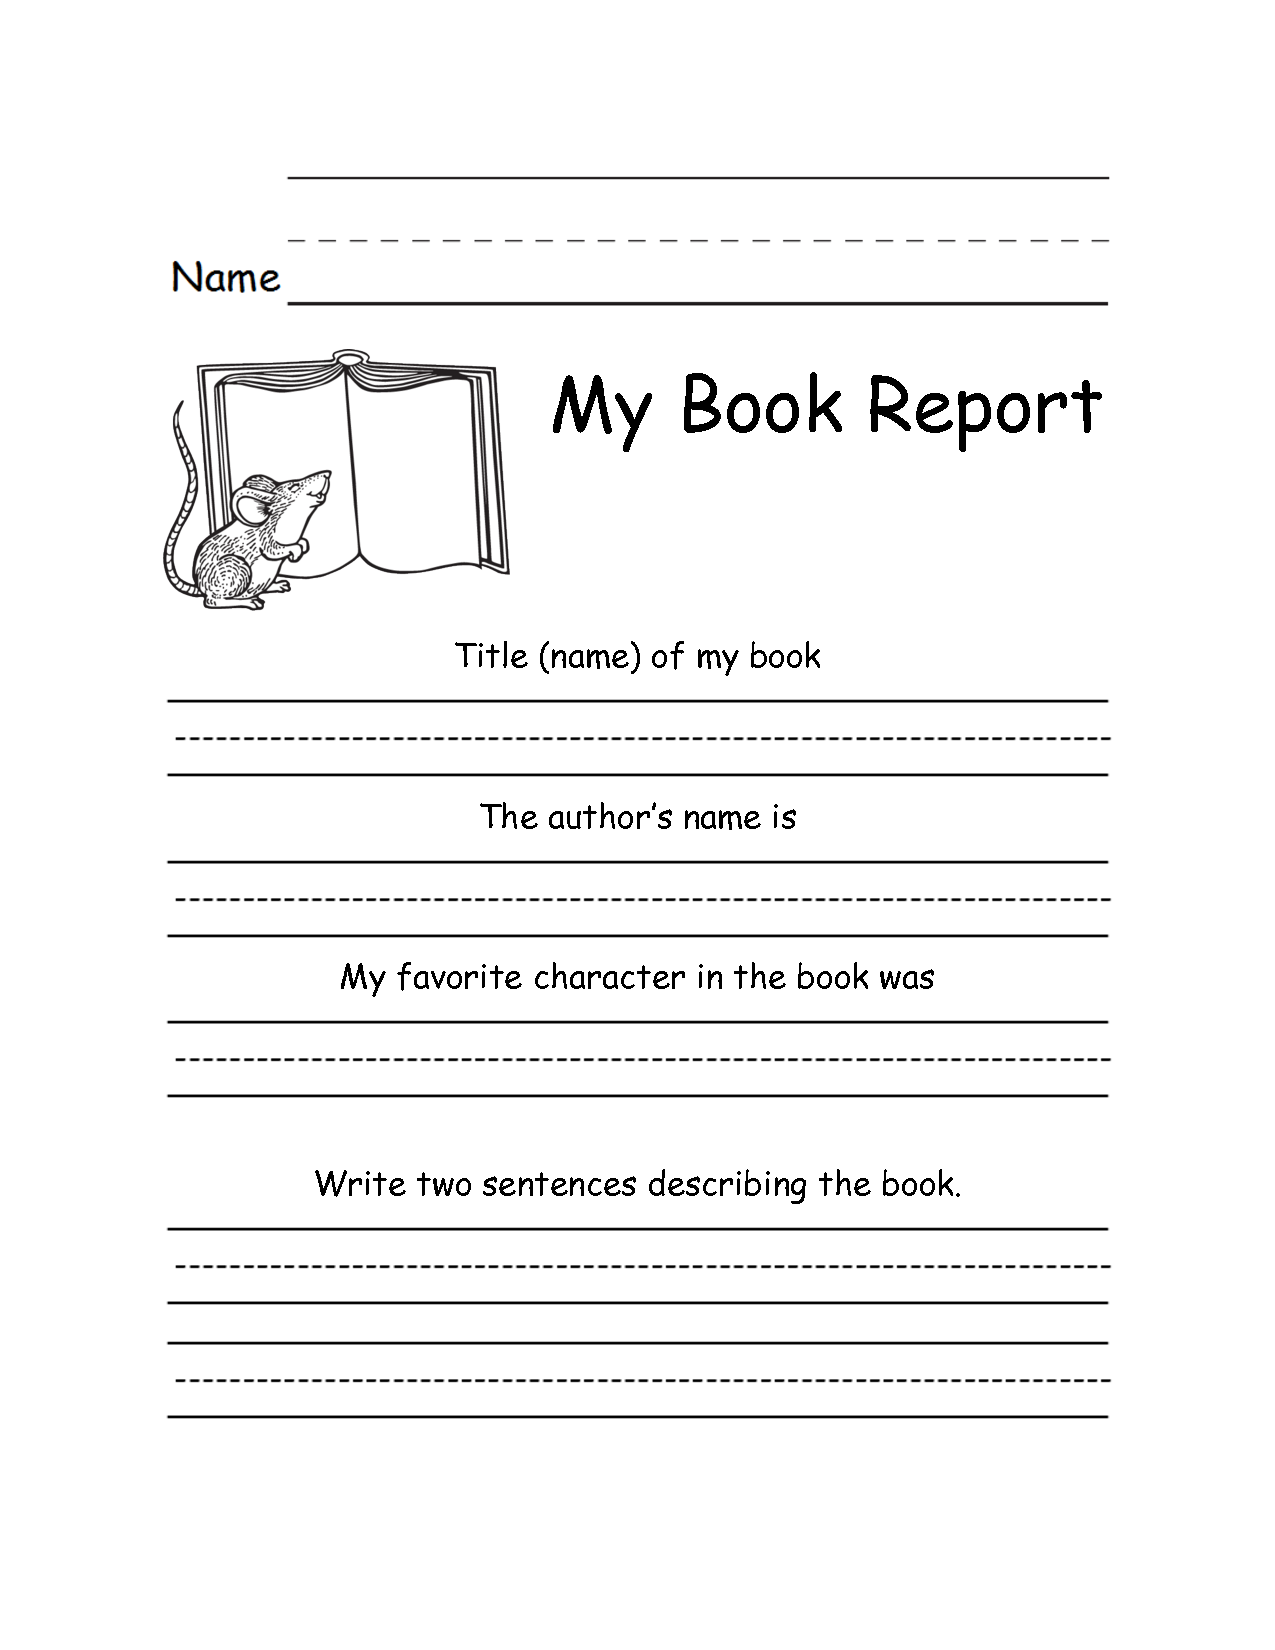 book report sample for th graders book reports and reading logs mrs gilstrap s th grade class home fc book reports and reading logs mrs gilstrap s th grade class home fc